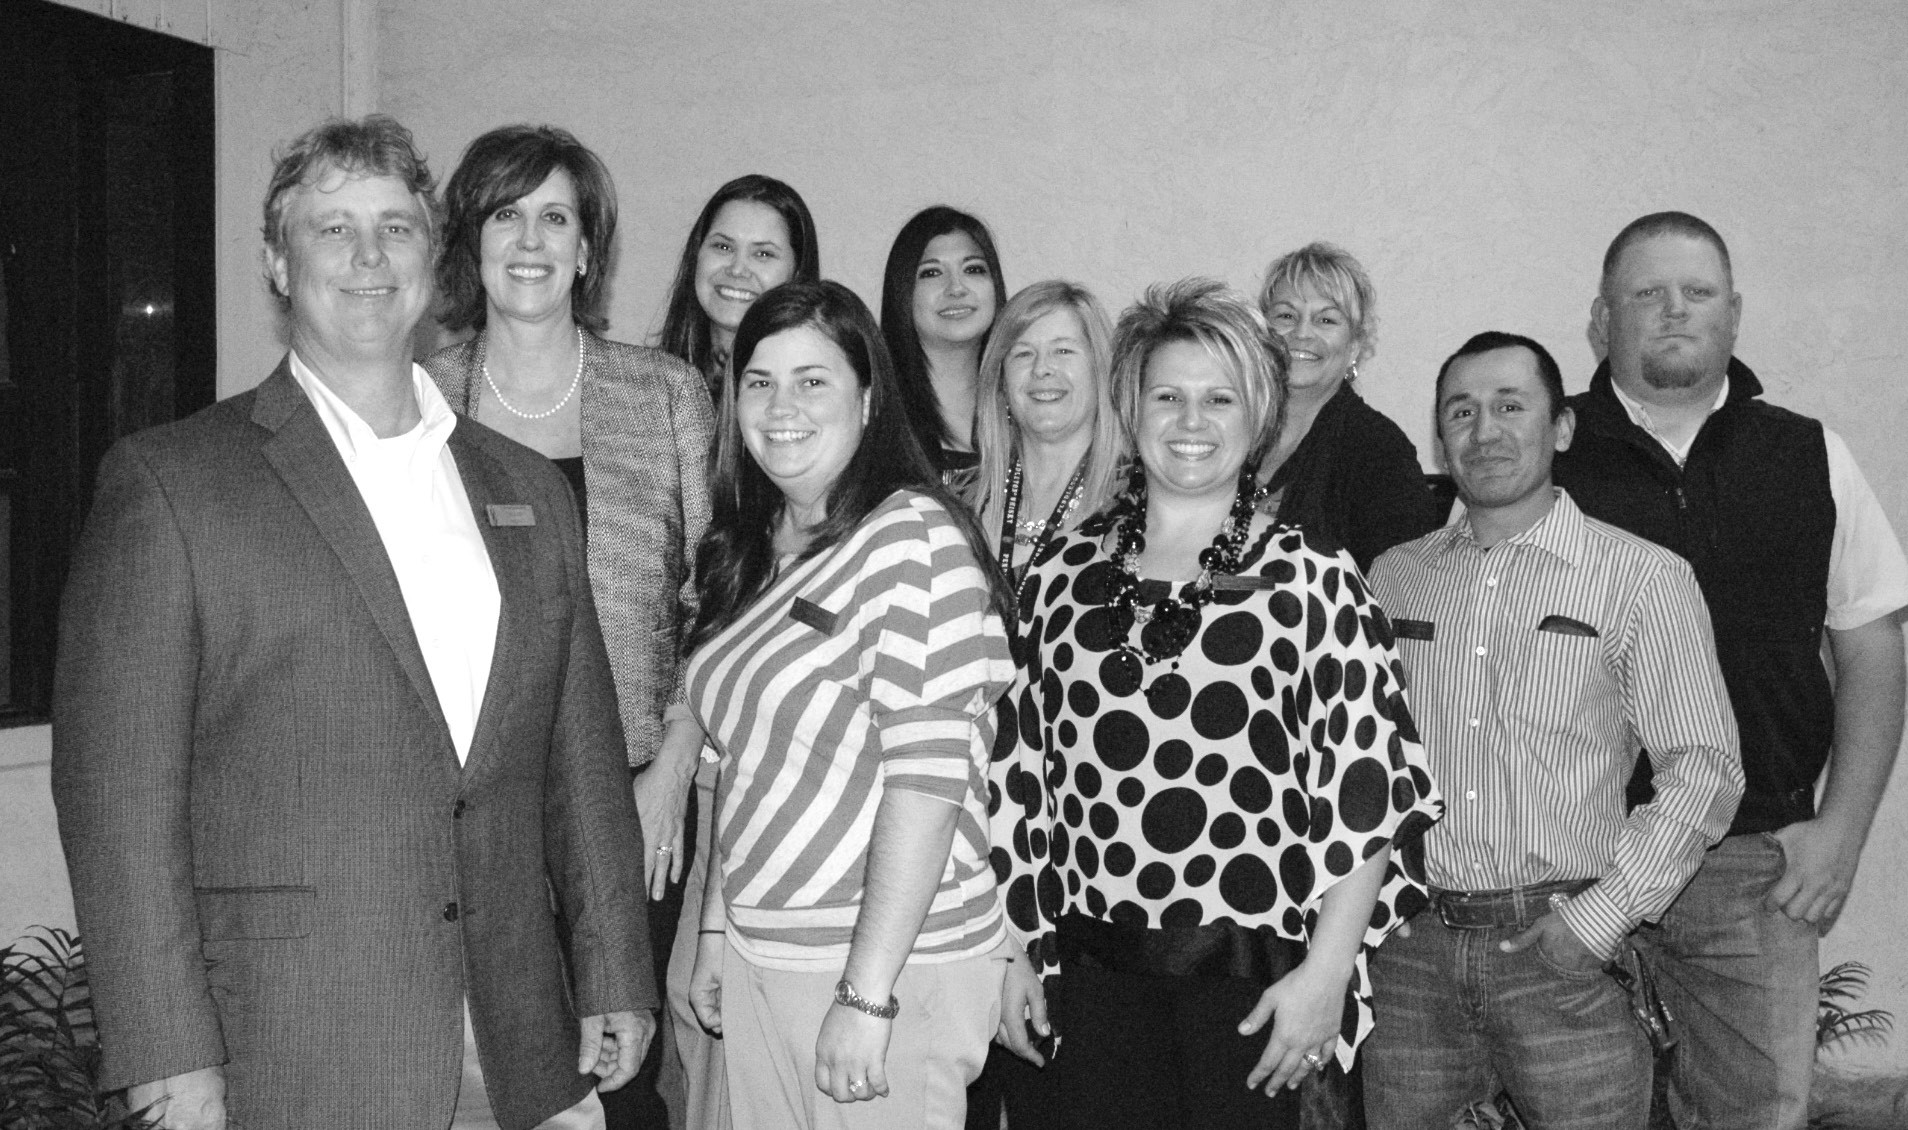 Pleasanton Chamber of Commerce officers and directors gather after the 2013 awards banquet. Left to right are: President Chico Cox, Director pat Seay Cox, Treasurer Ginnie Otto, 2nd Vice President Candace Vrana, Director Jackie Brown, Director Sharon LaGrange, Director Kelly McBee, Director Kellie Vrana, Director Jorge Quiroga and 1st Vice President Wade McBee. Missing from the photo are Secretary Claudia Reyes, Jason Reyes, EricOtto and Rita Castillo.